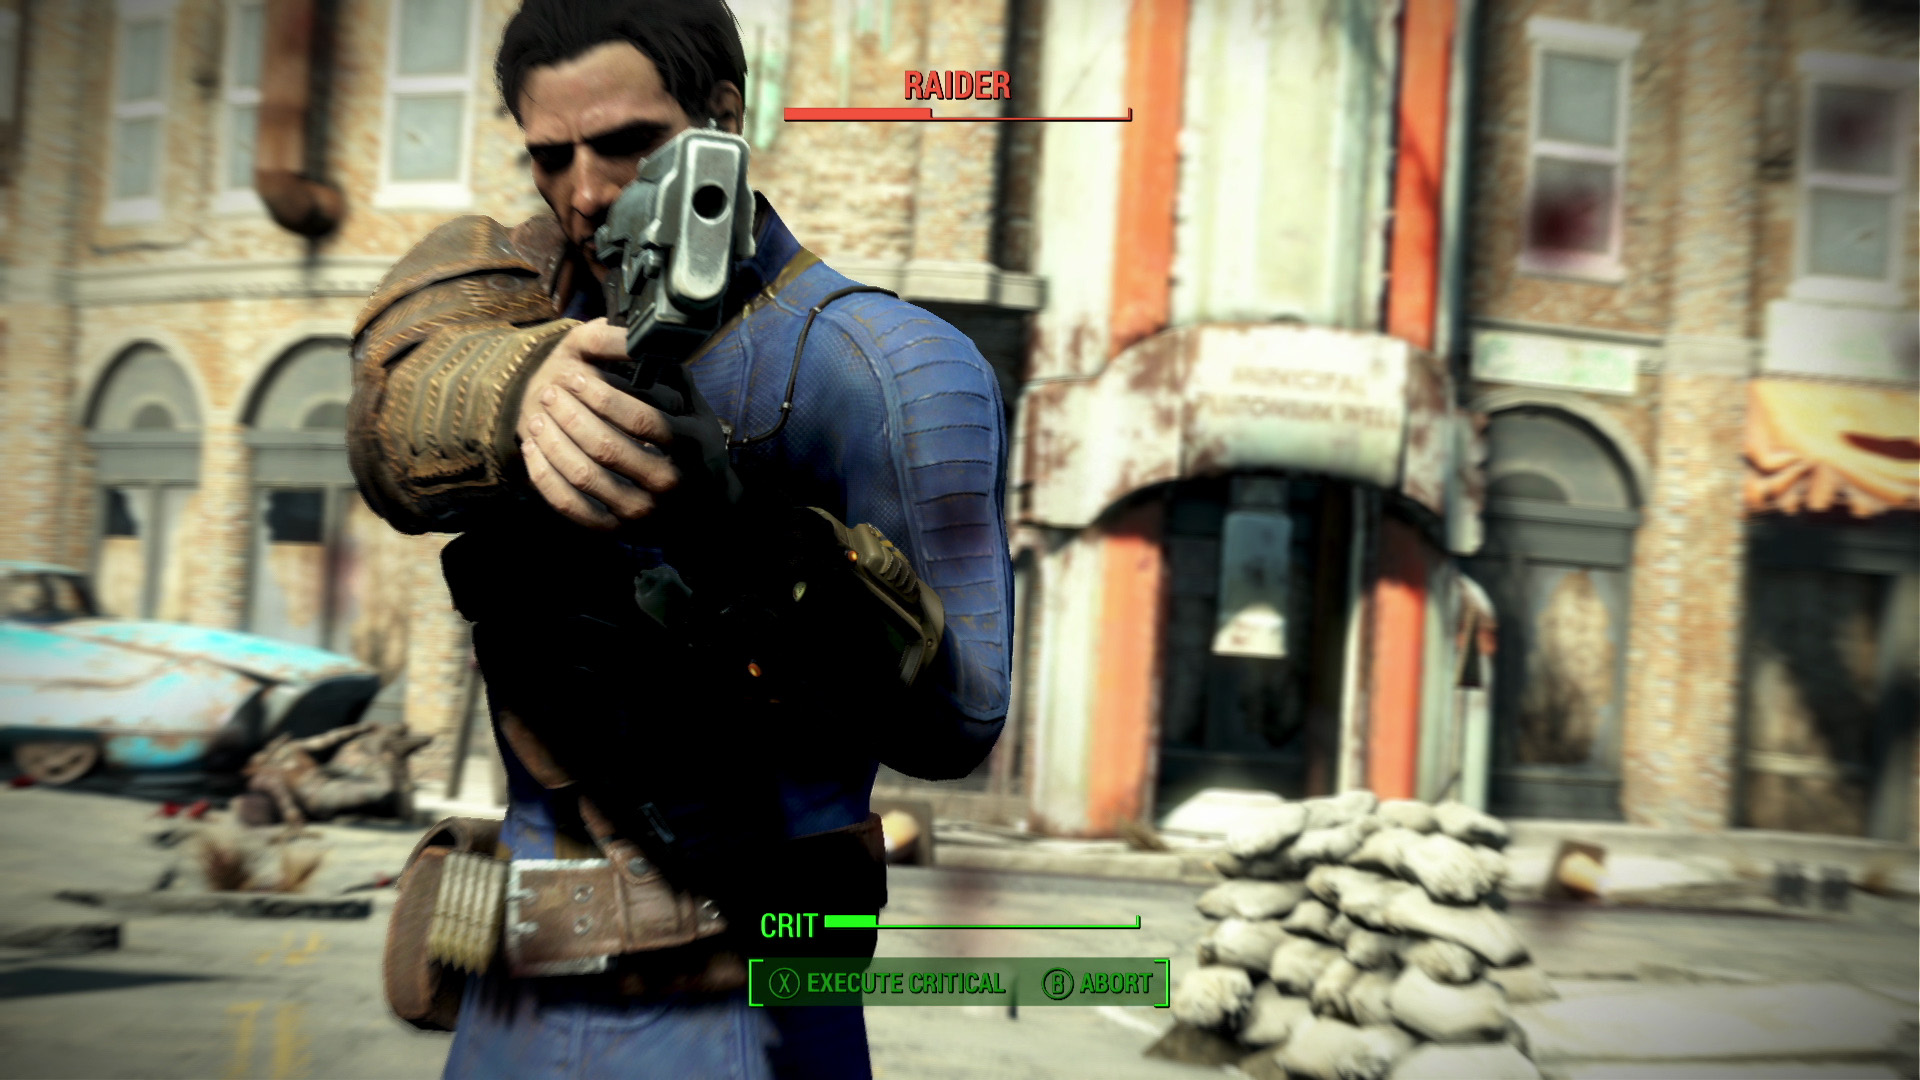 Peachy Fallout 4 Tips 15 Essential Fallout 4 Tips To Know Before Unemploymentrelief Wooden Chair Designs For Living Room Unemploymentrelieforg